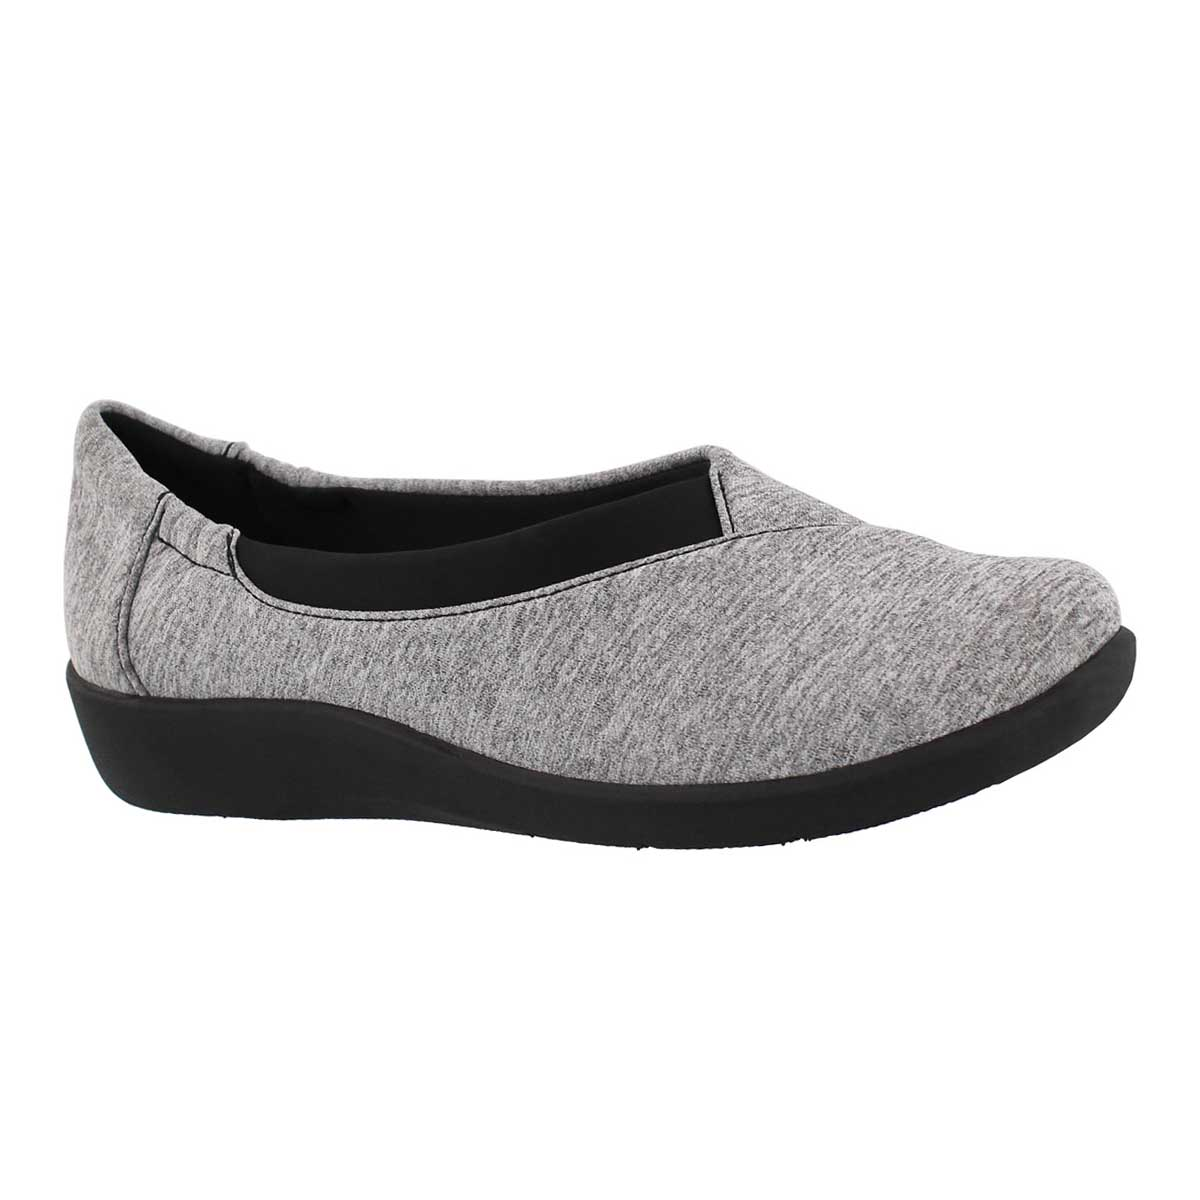 Women's SILLIAN JETAY grey casual slip ons